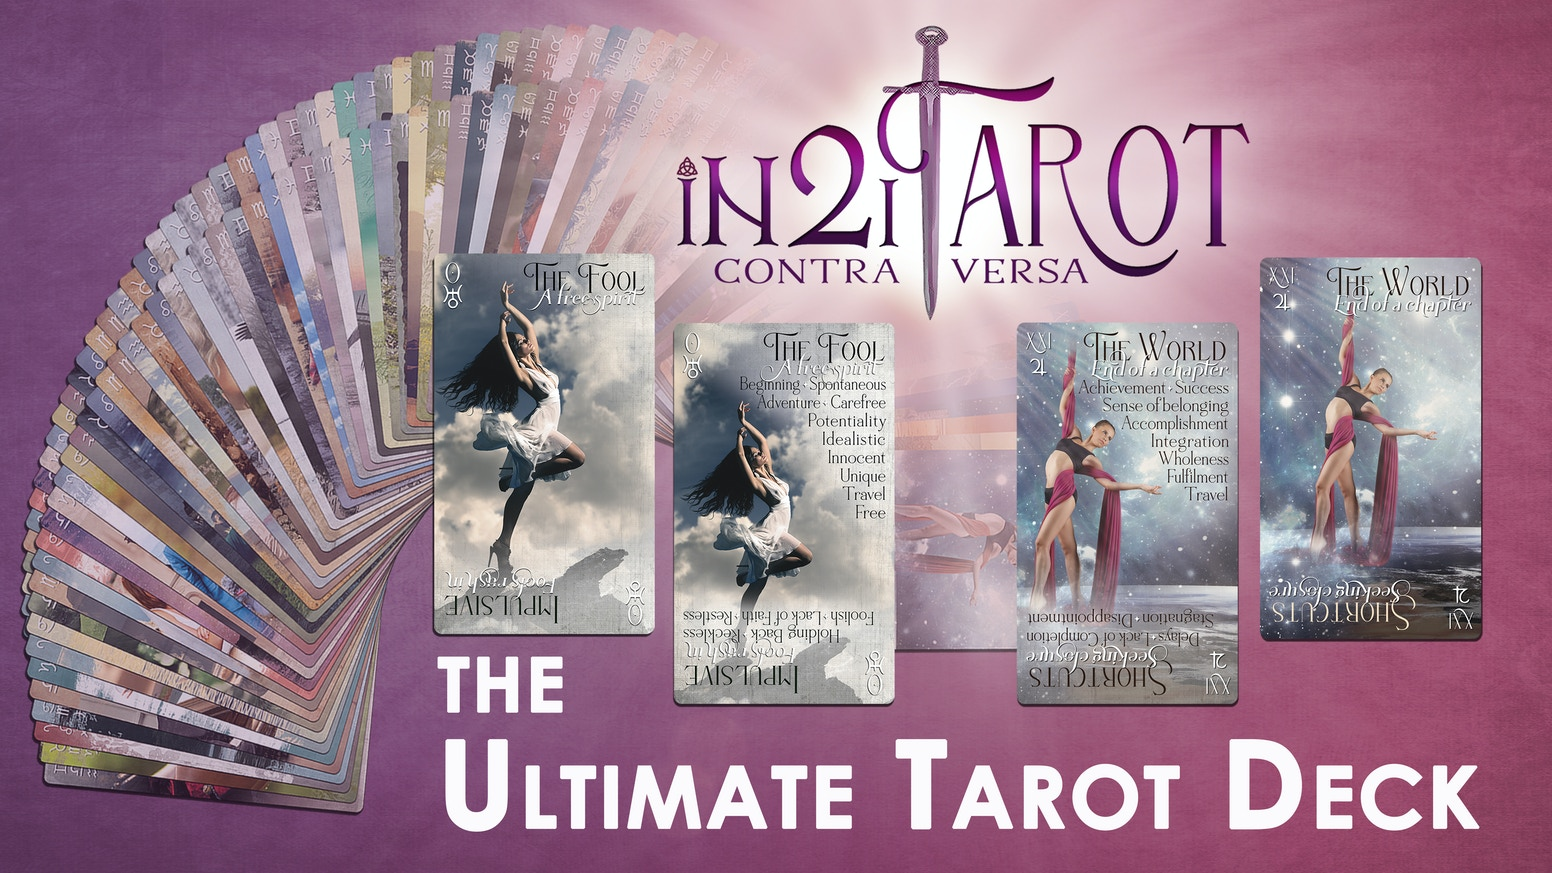 The versatile, 4-in-1 tarot deck w/ beautiful imagery & powerful keywords, delivering clear & insightful messages for readers.